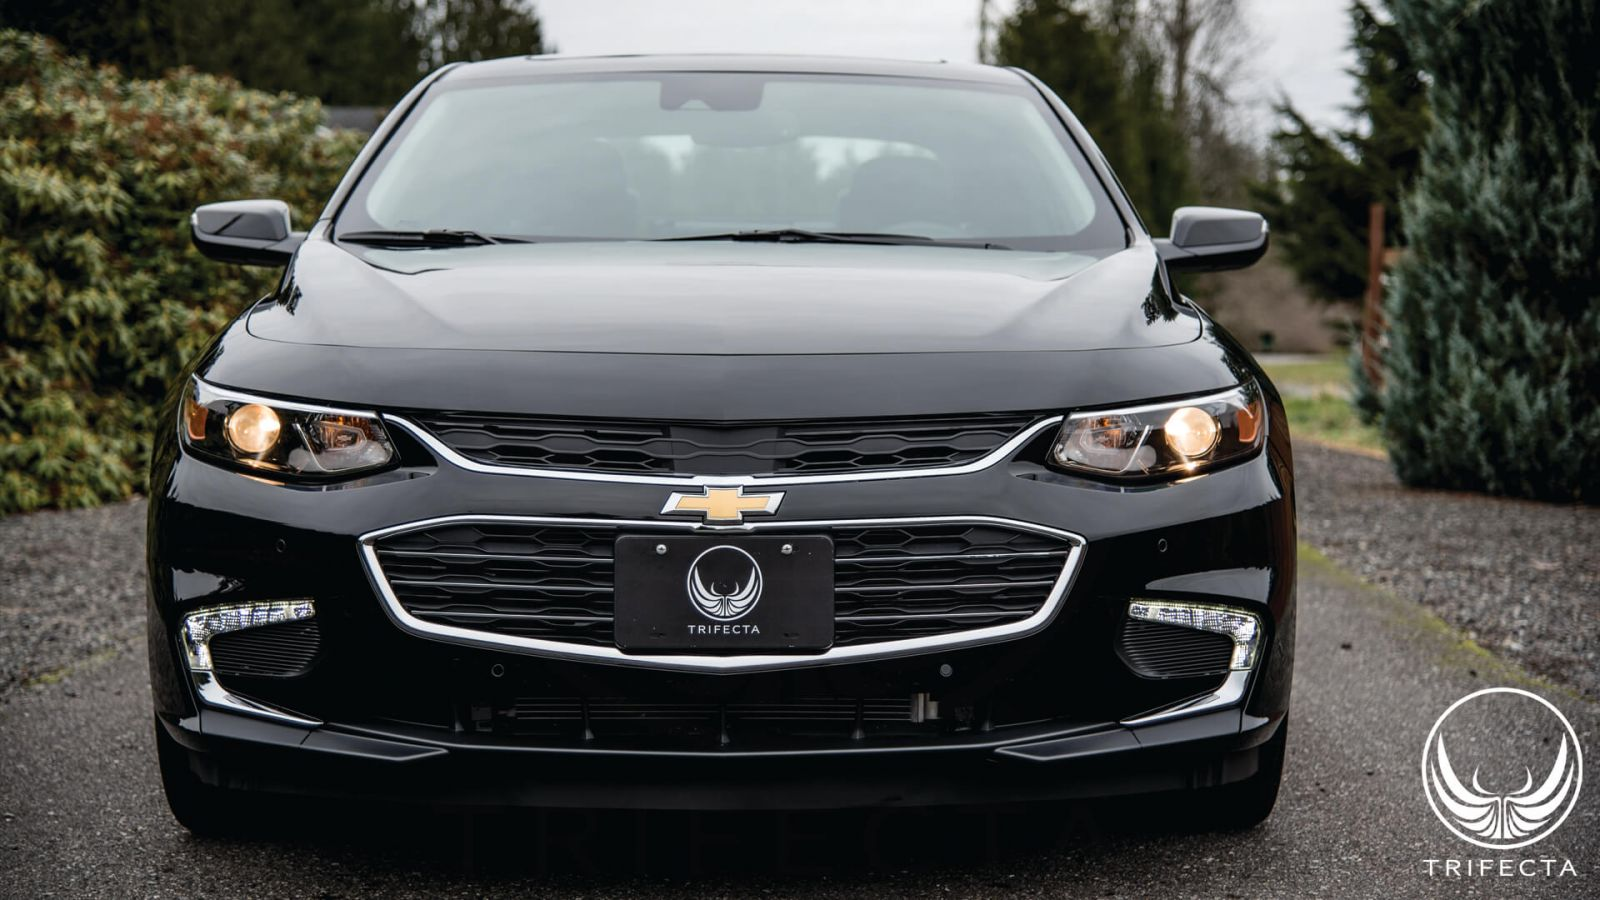 2016 Chevrolet Malibu 2 0l Turbo Med Gallery 1 88 219102 Jpg